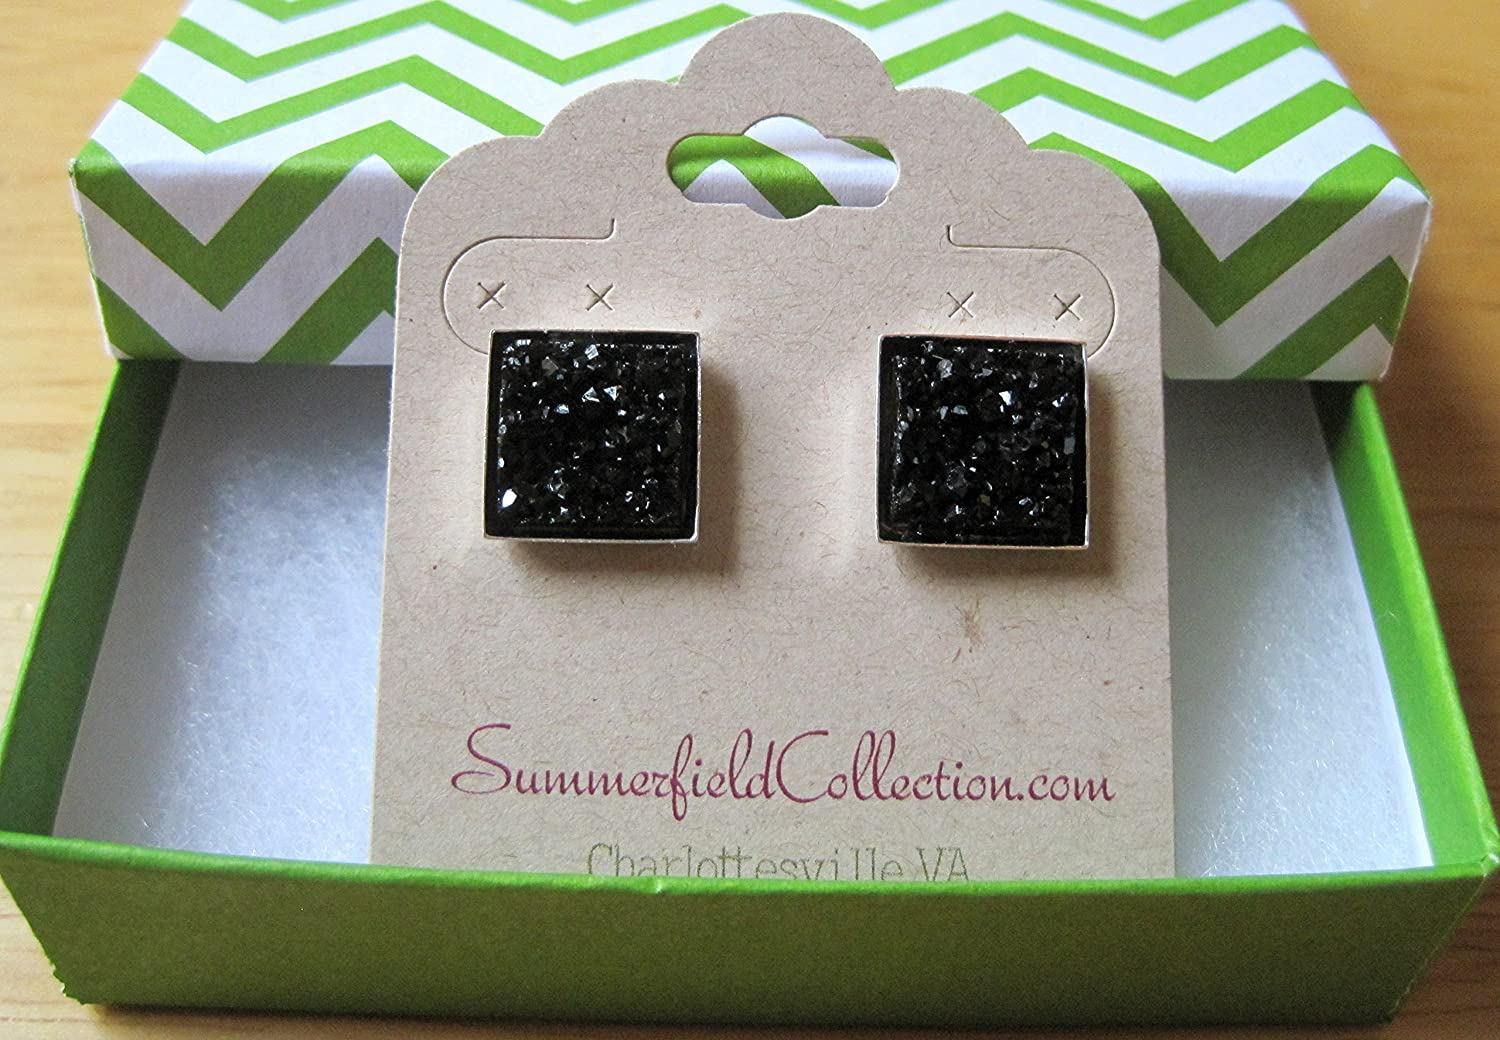 Silver-tone and Black Geometric Square Shaped Chunky Faux Druzy Stud Earrings 12mm Statement